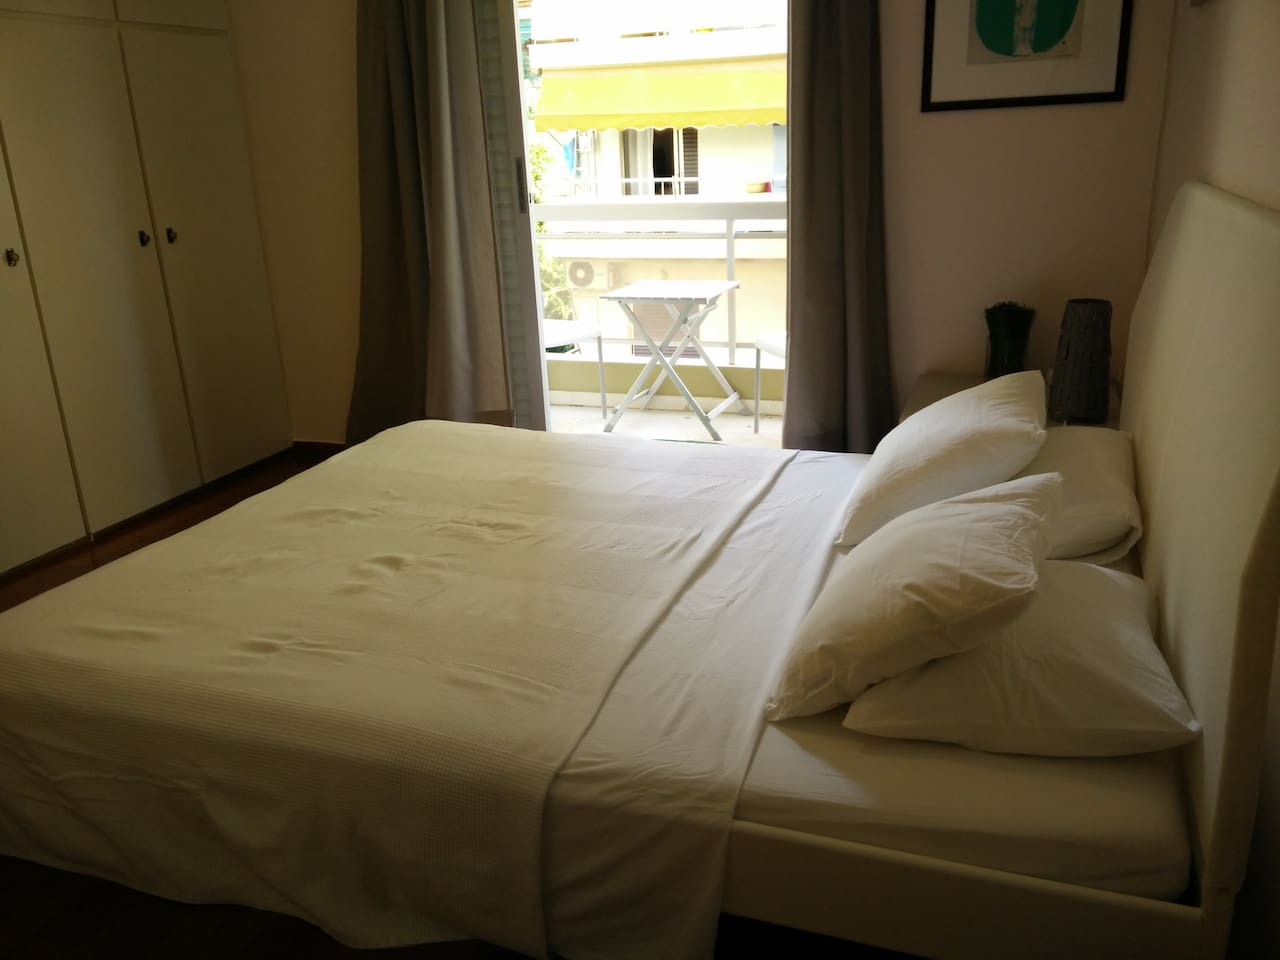 Room with private balcony, airconditioning, desk and lots of storage space